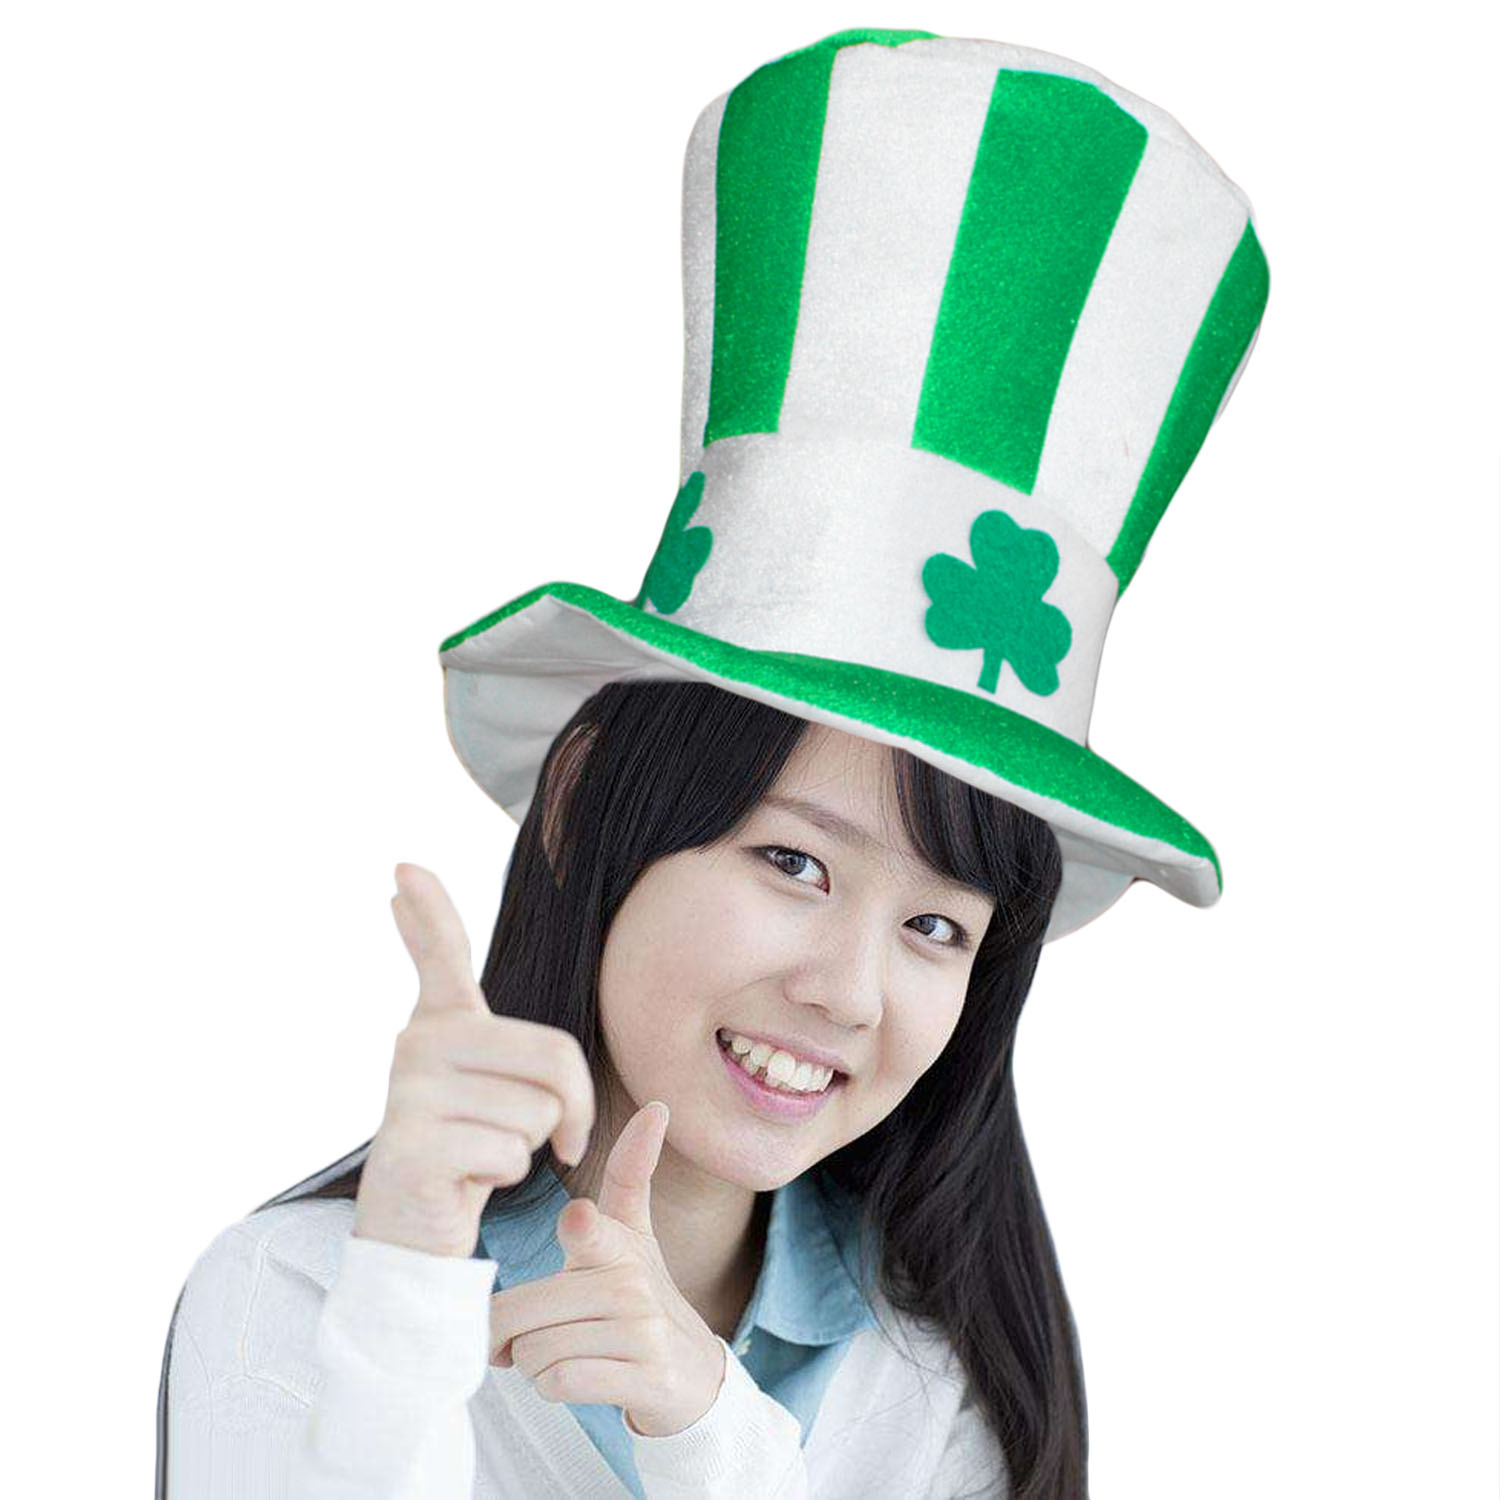 Green St Patricks Day Irish Funning Cute Party Hat Toys Gifts Celebration Costume Photo Booth Prop Decoration Funning Party Cap